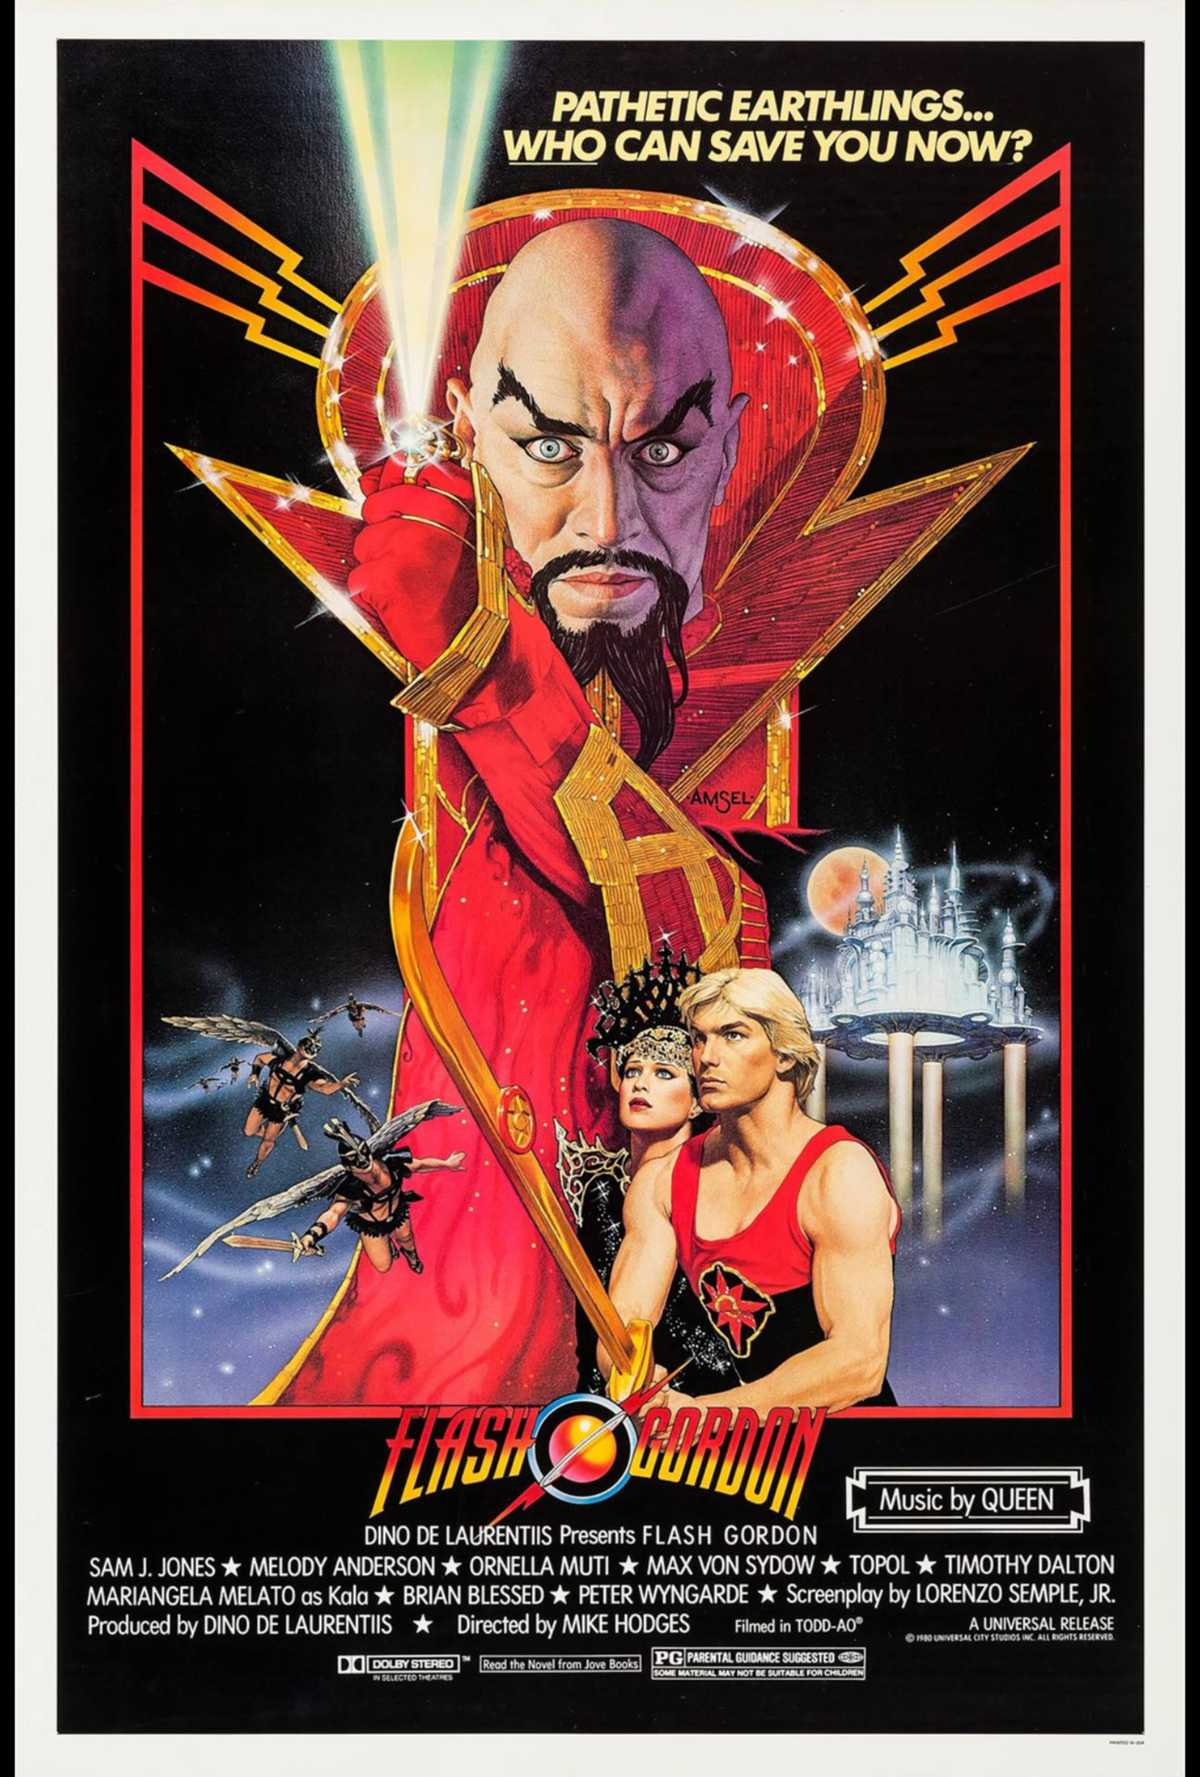 Flash Gordon: Zia Nights at FilmBar